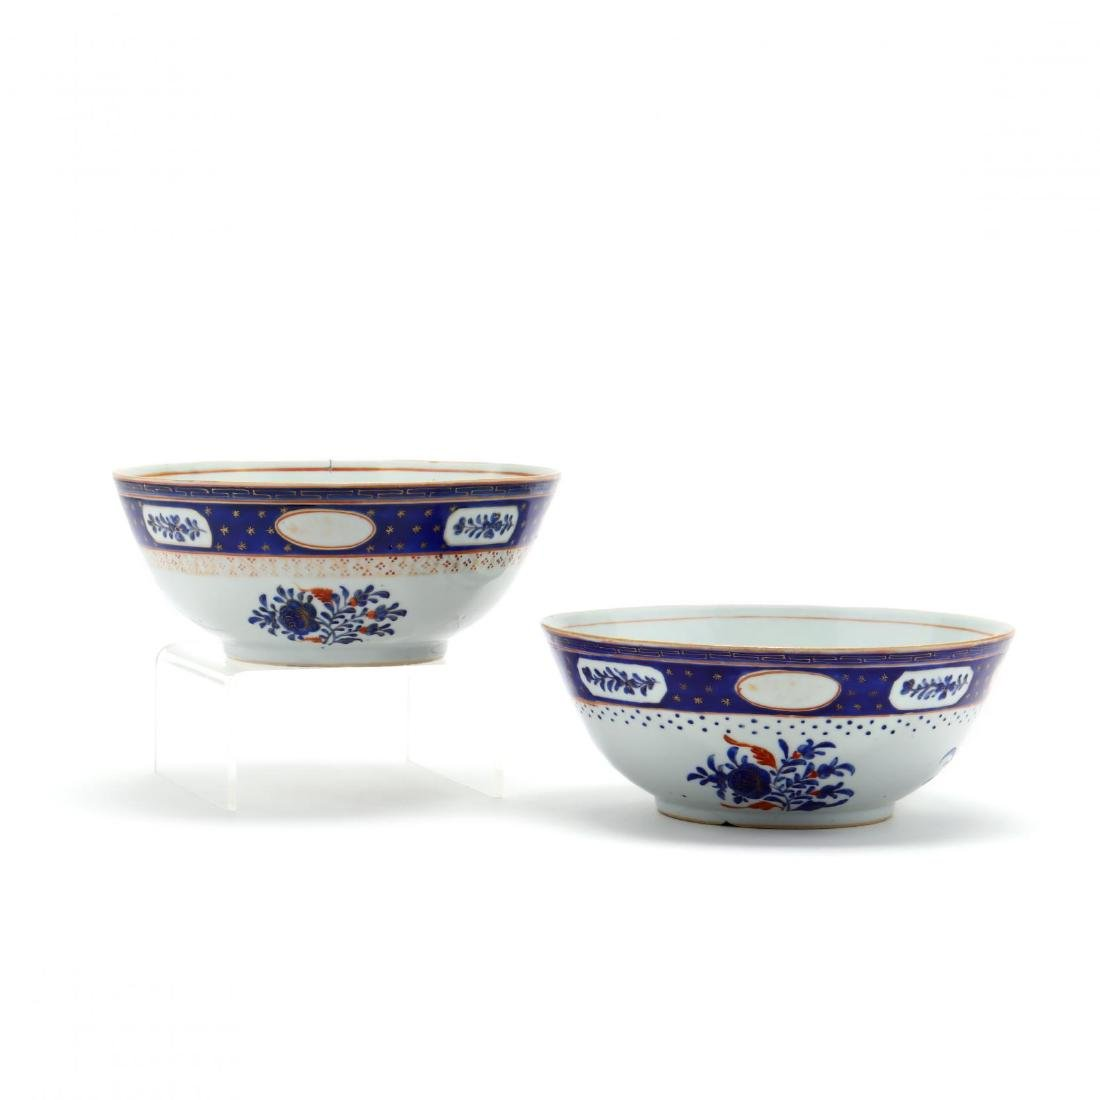 A Pair of Chinese Export Porcelain Bowls